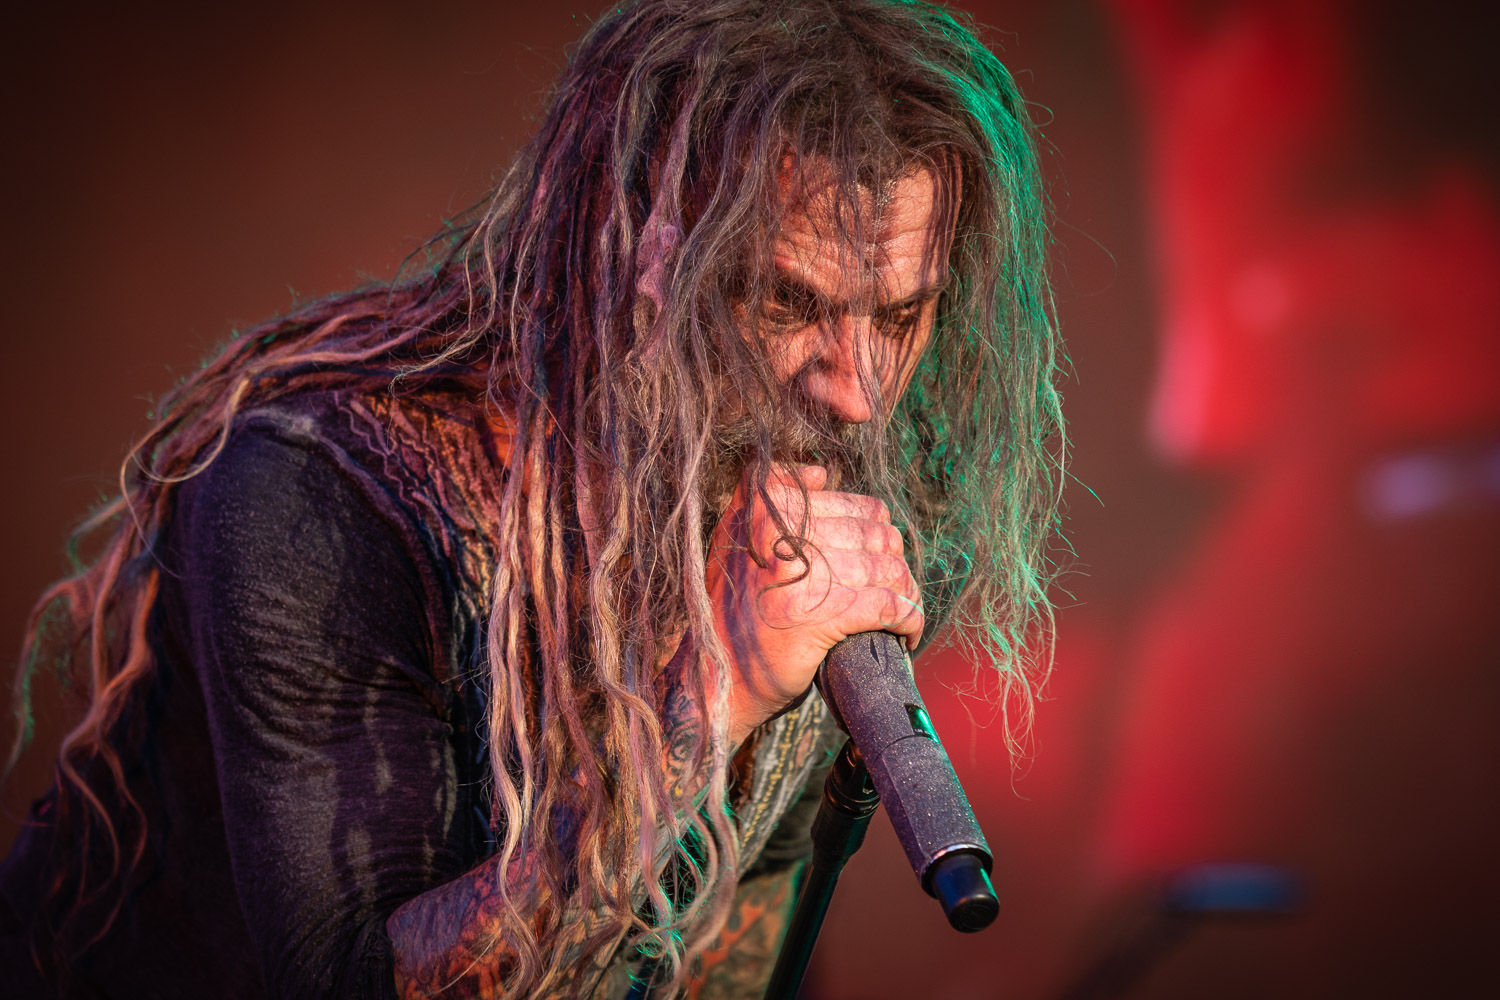 Rob Zombie live on stage at the 2019 Copenhell Metal Festival